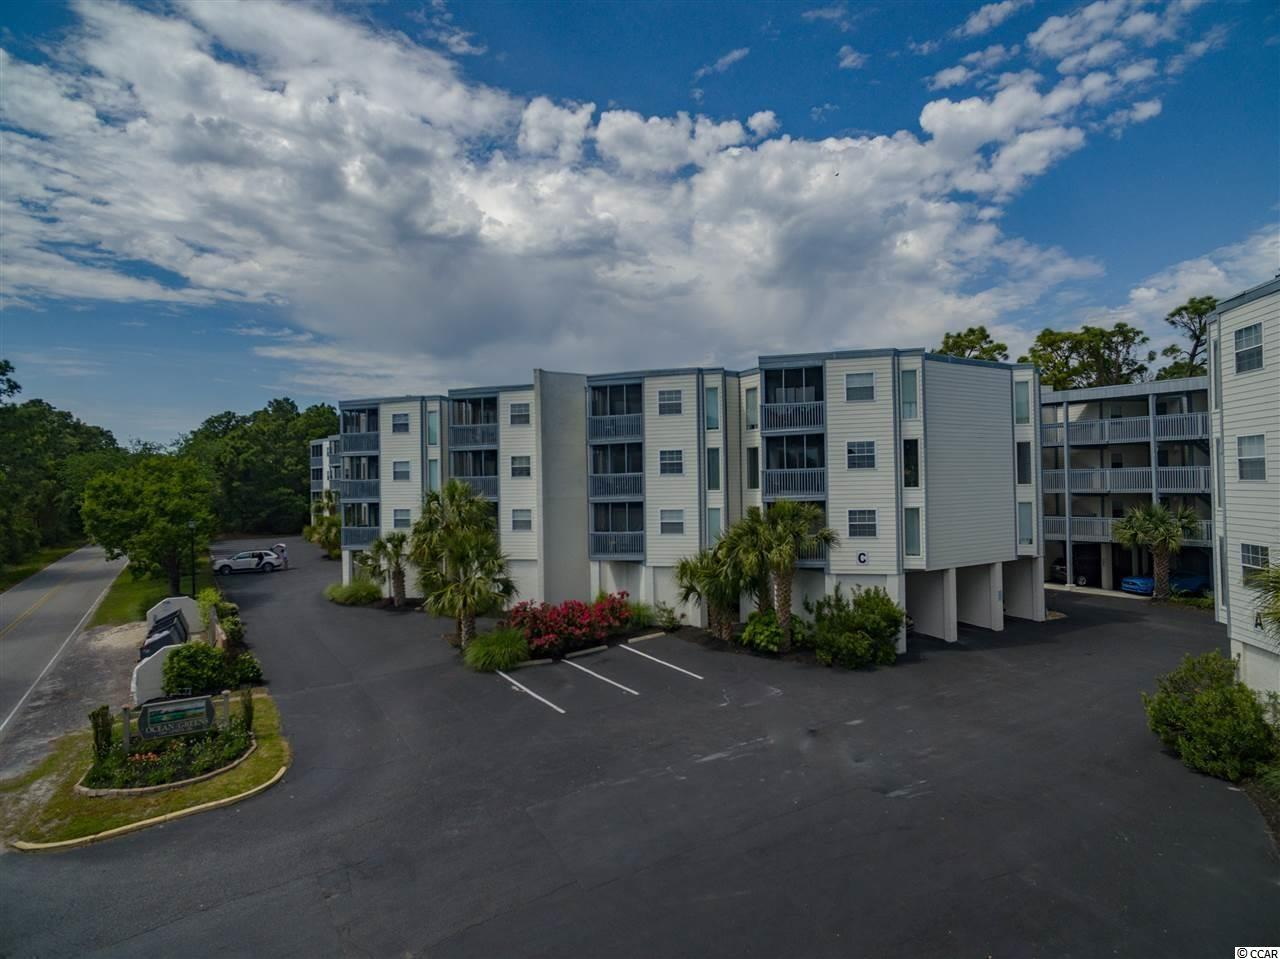 Beautiful and updated third floor 2 bedroom, 2 bathroom condo with open concept. New Flooring, new furniture, and sold furnished with all appliances. NO ELEVATORS in this building. Great location in the heart of North Myrtle Beach, just a quick ride to the beach! Centrally located near Barefoot Landing, North Myrtle Beach Parks, Beaches, Restaurants, Golfing and more! Short Term and Long Term Rentals allowed in this complex! There is a washer/dryer facility area on site, but not within this condo. All Measurements are approximate and must be verified by buyer or buyer's agent.